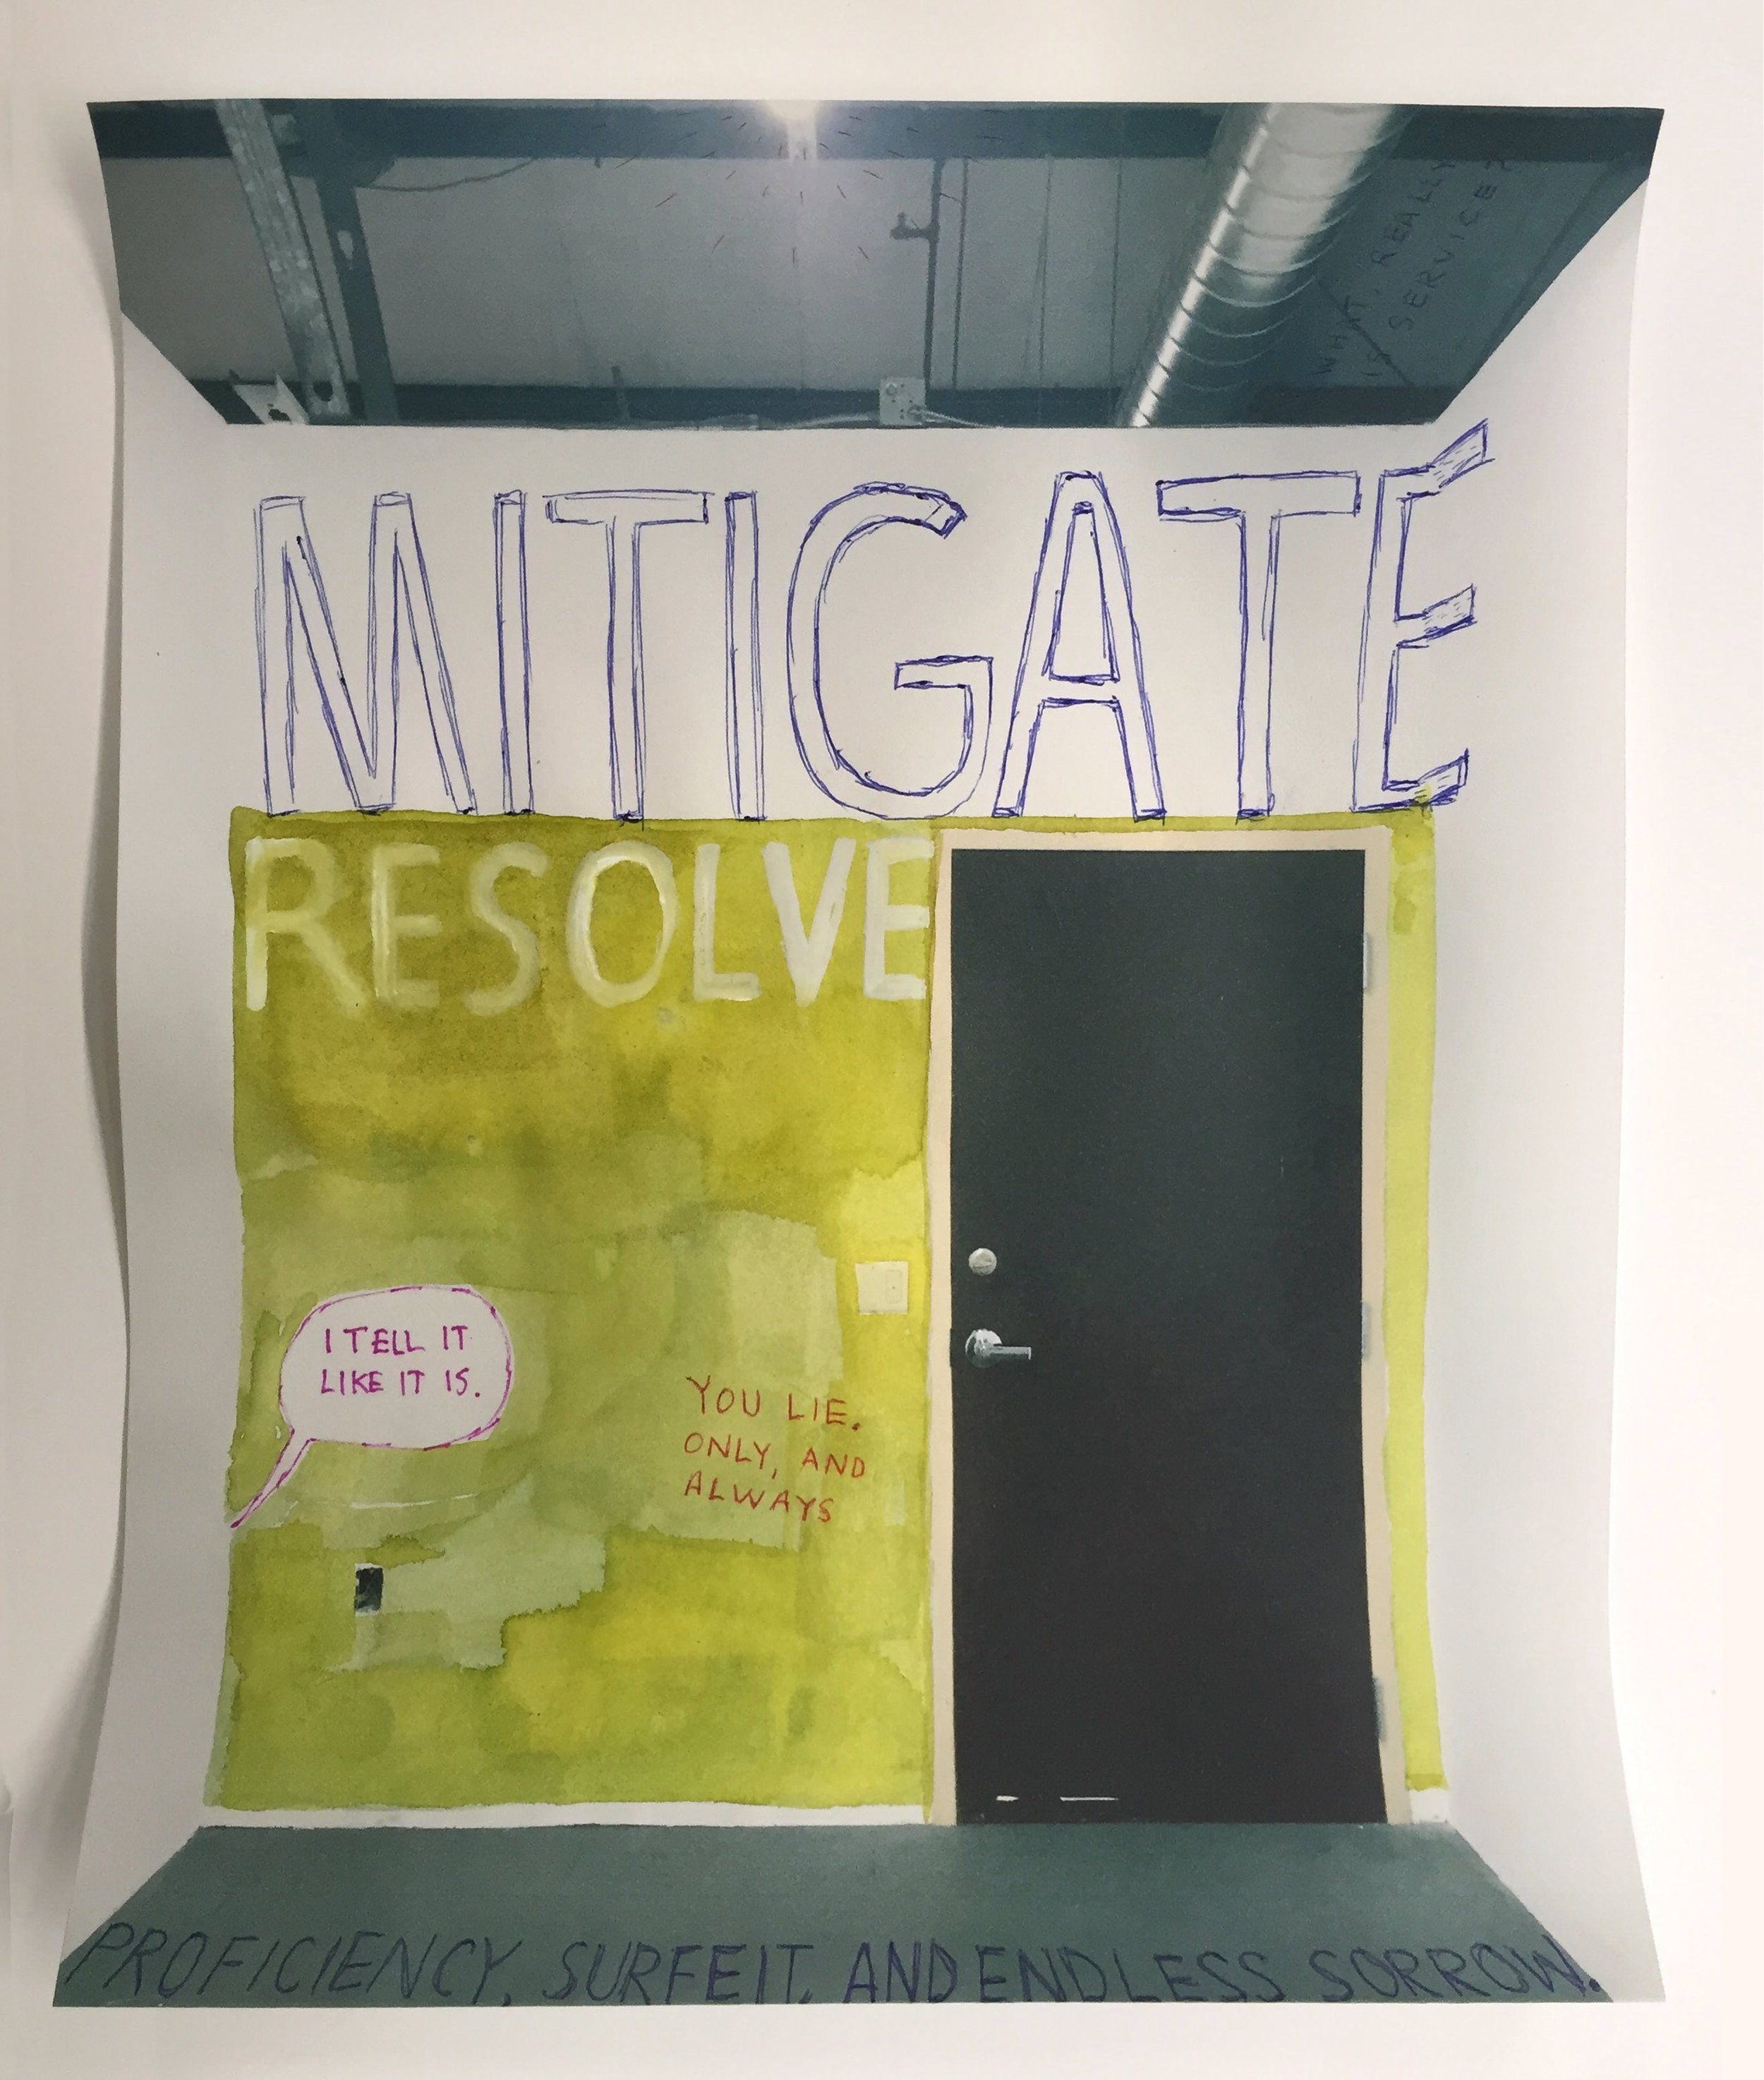 "Mitigate Resolve. 2016  Gouache, ink on inkjet print. Onionskin typing paper. 8.5"" x 11"""